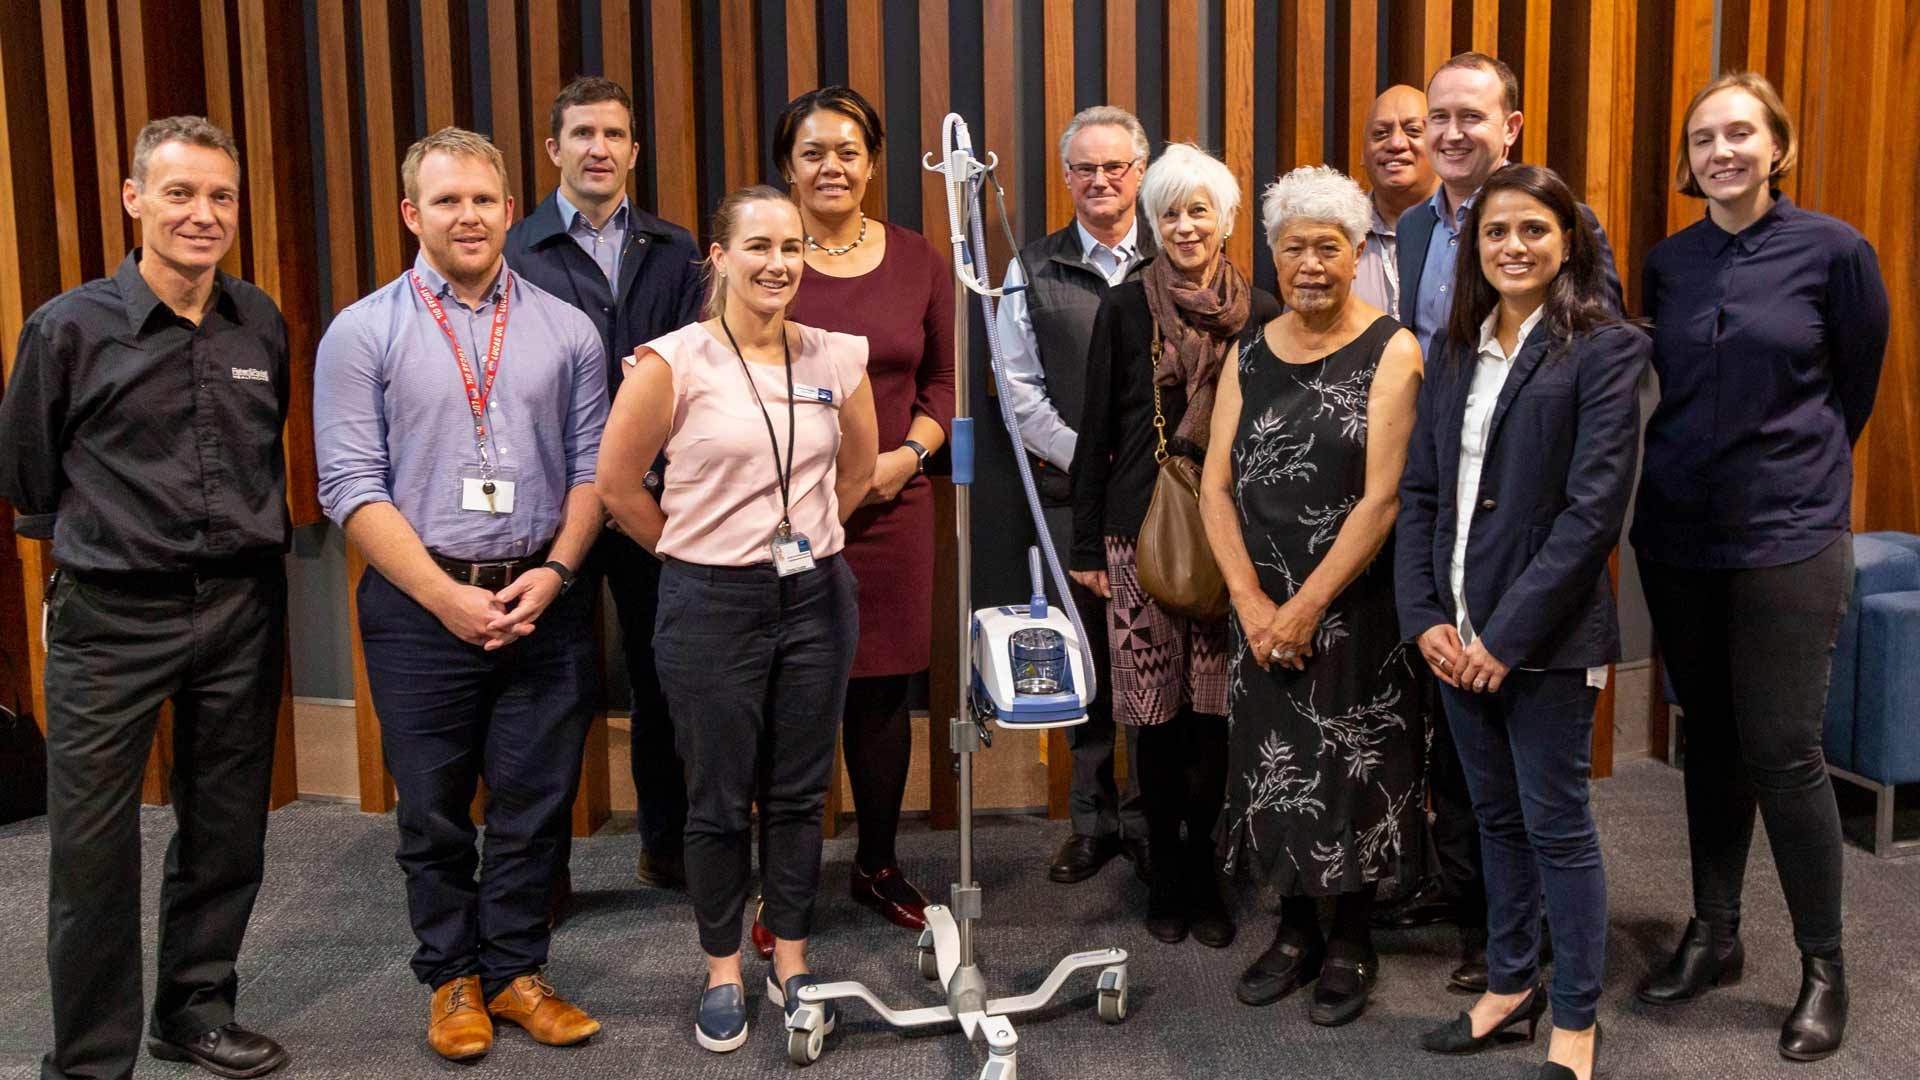 Fisher & Paykel Healthcare with leaders of Manukau DHB / Middlemore Hospital, where they donated 12 myAIRVO devices for patient use.